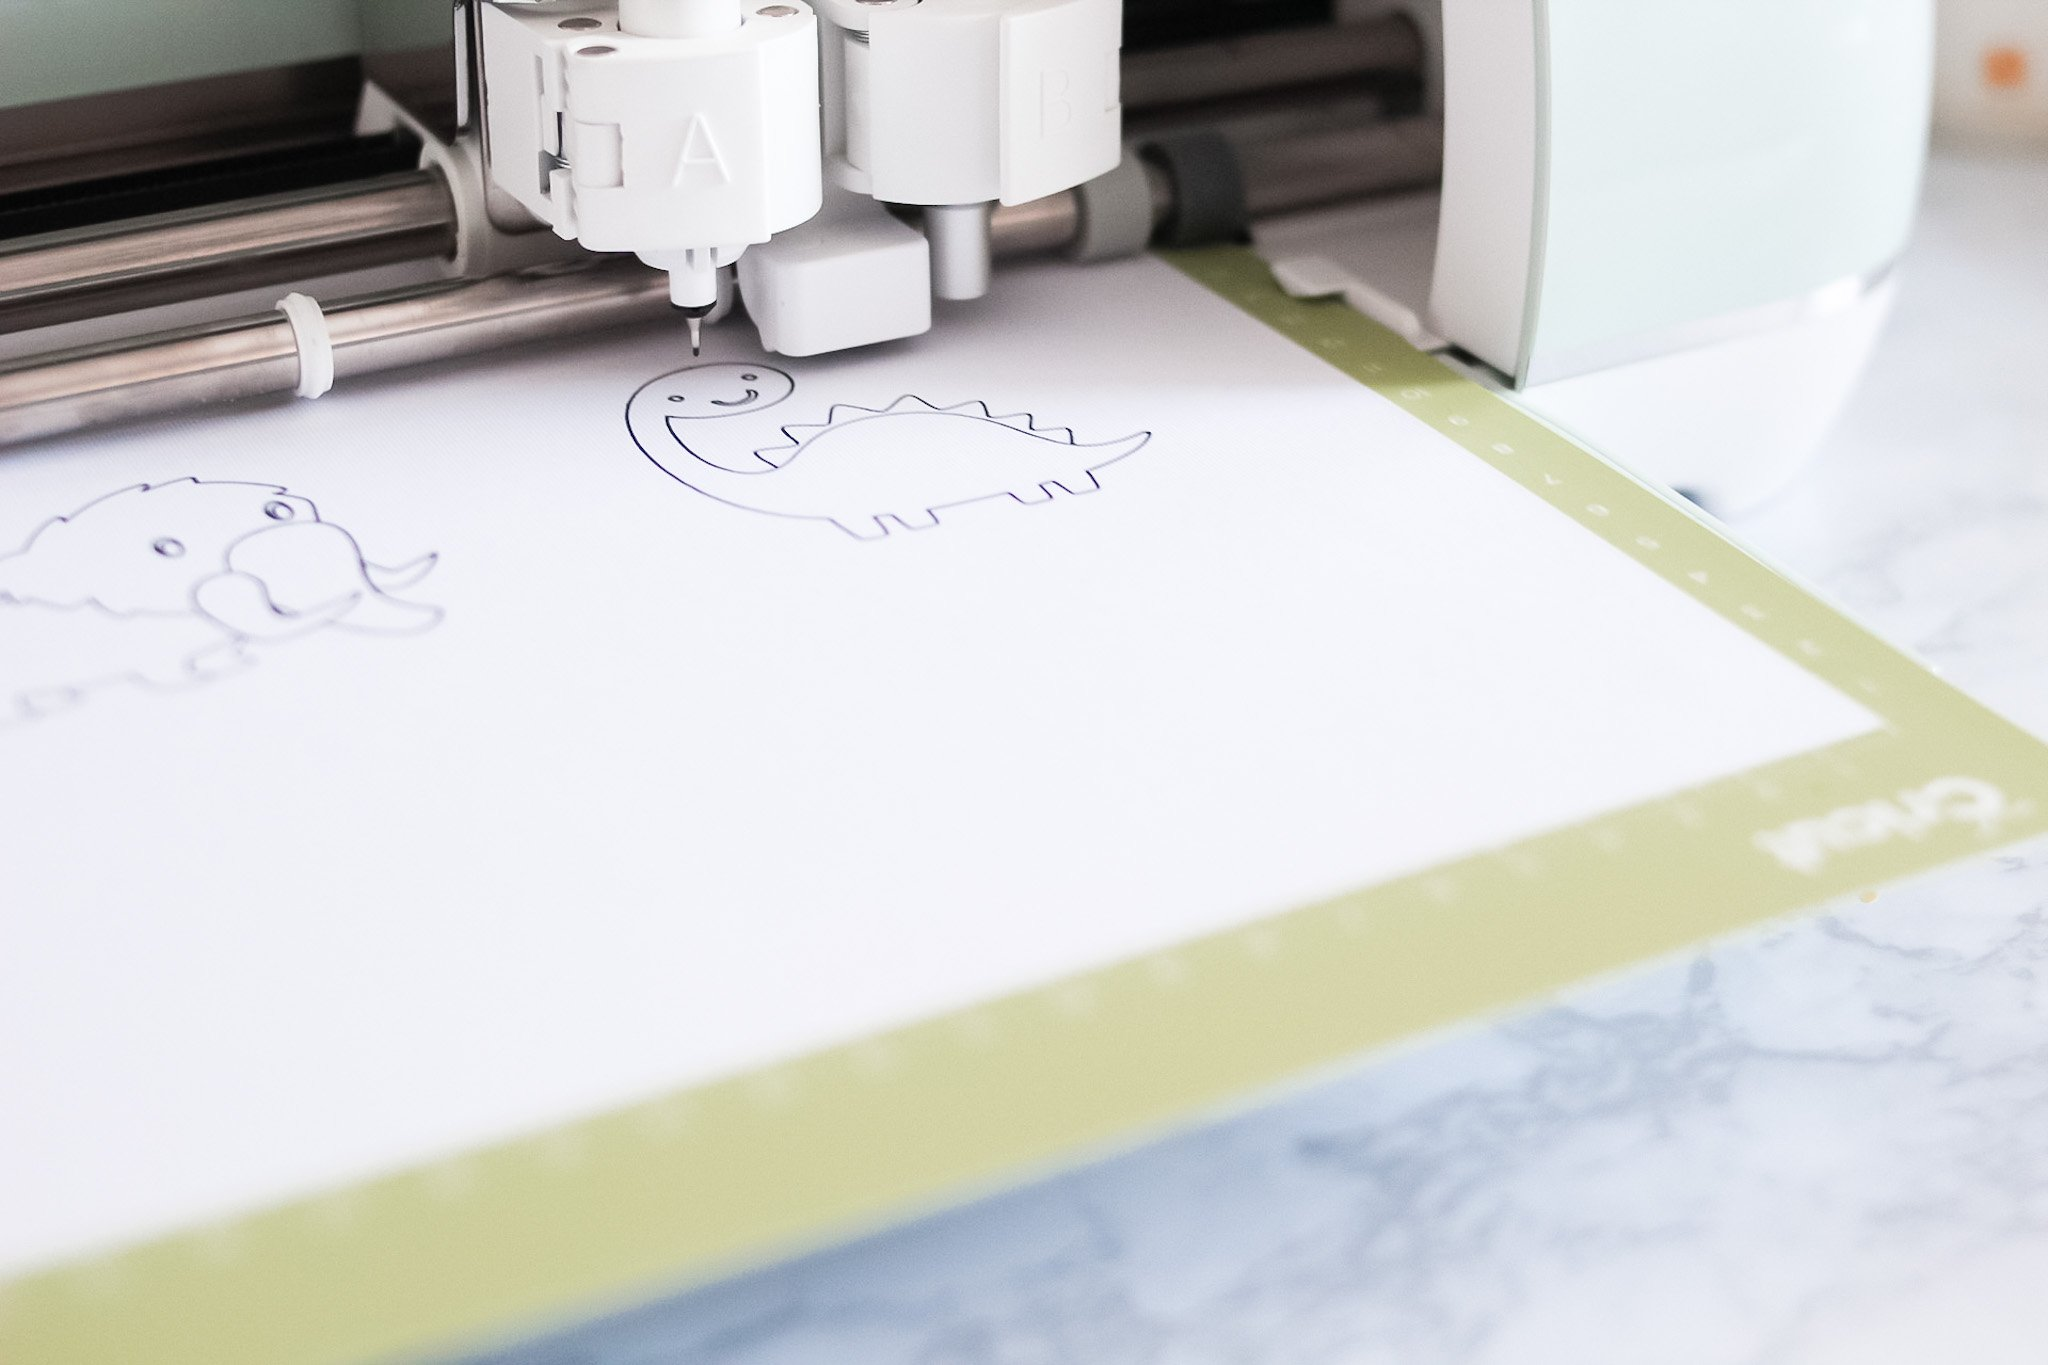 drawing with a pen using the cricut explore air 2